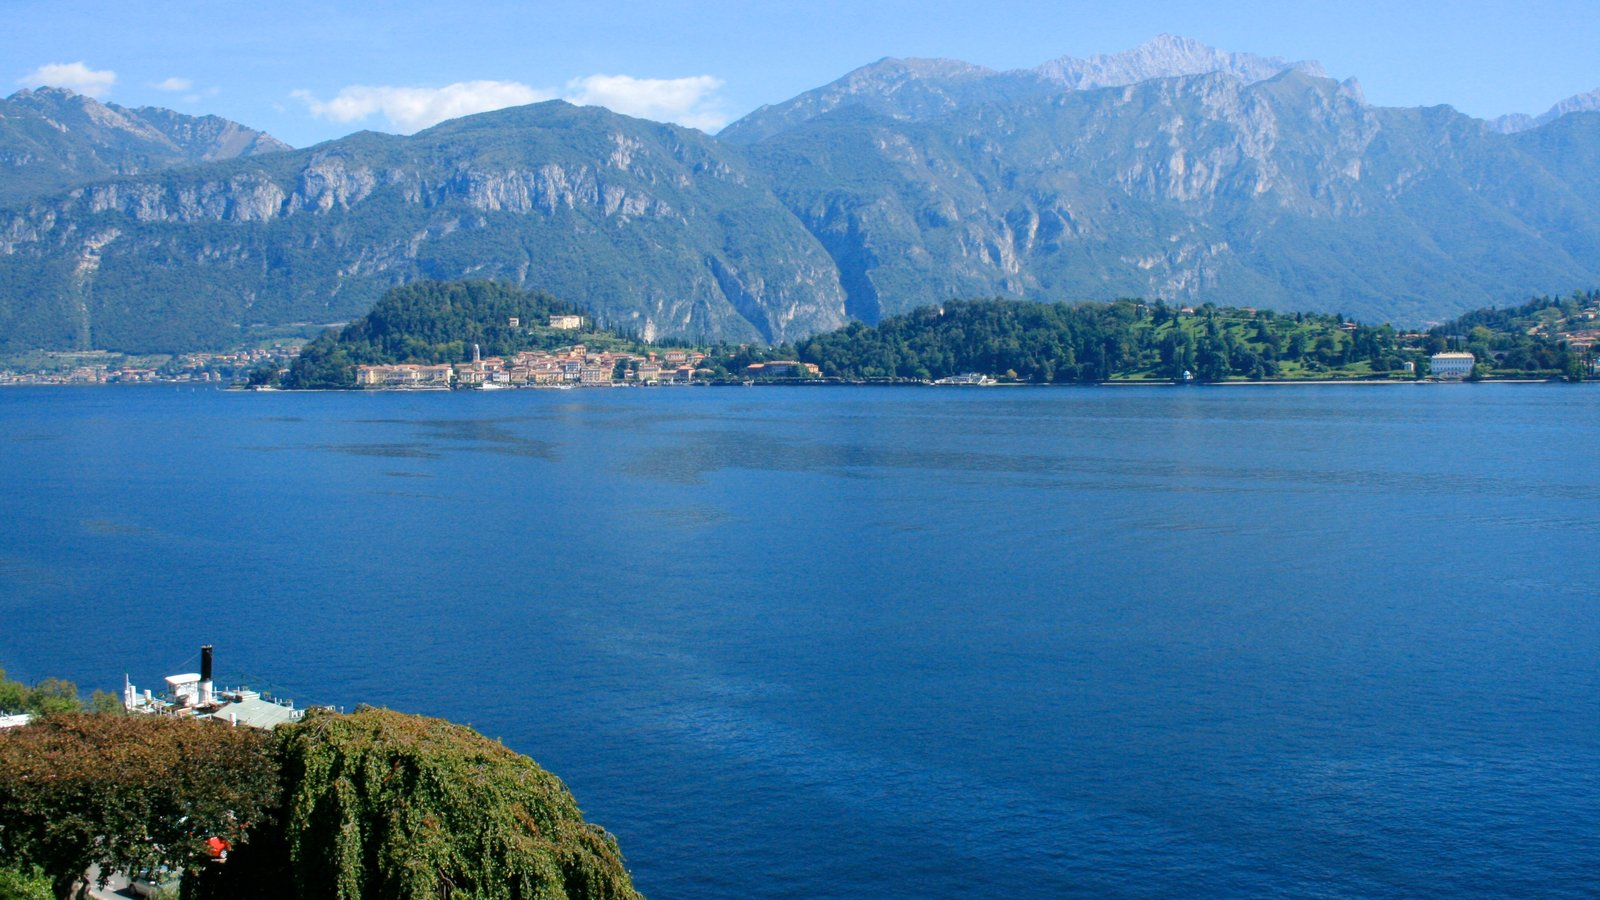 Como which includes a lake or waterhole, landscape views and mountains